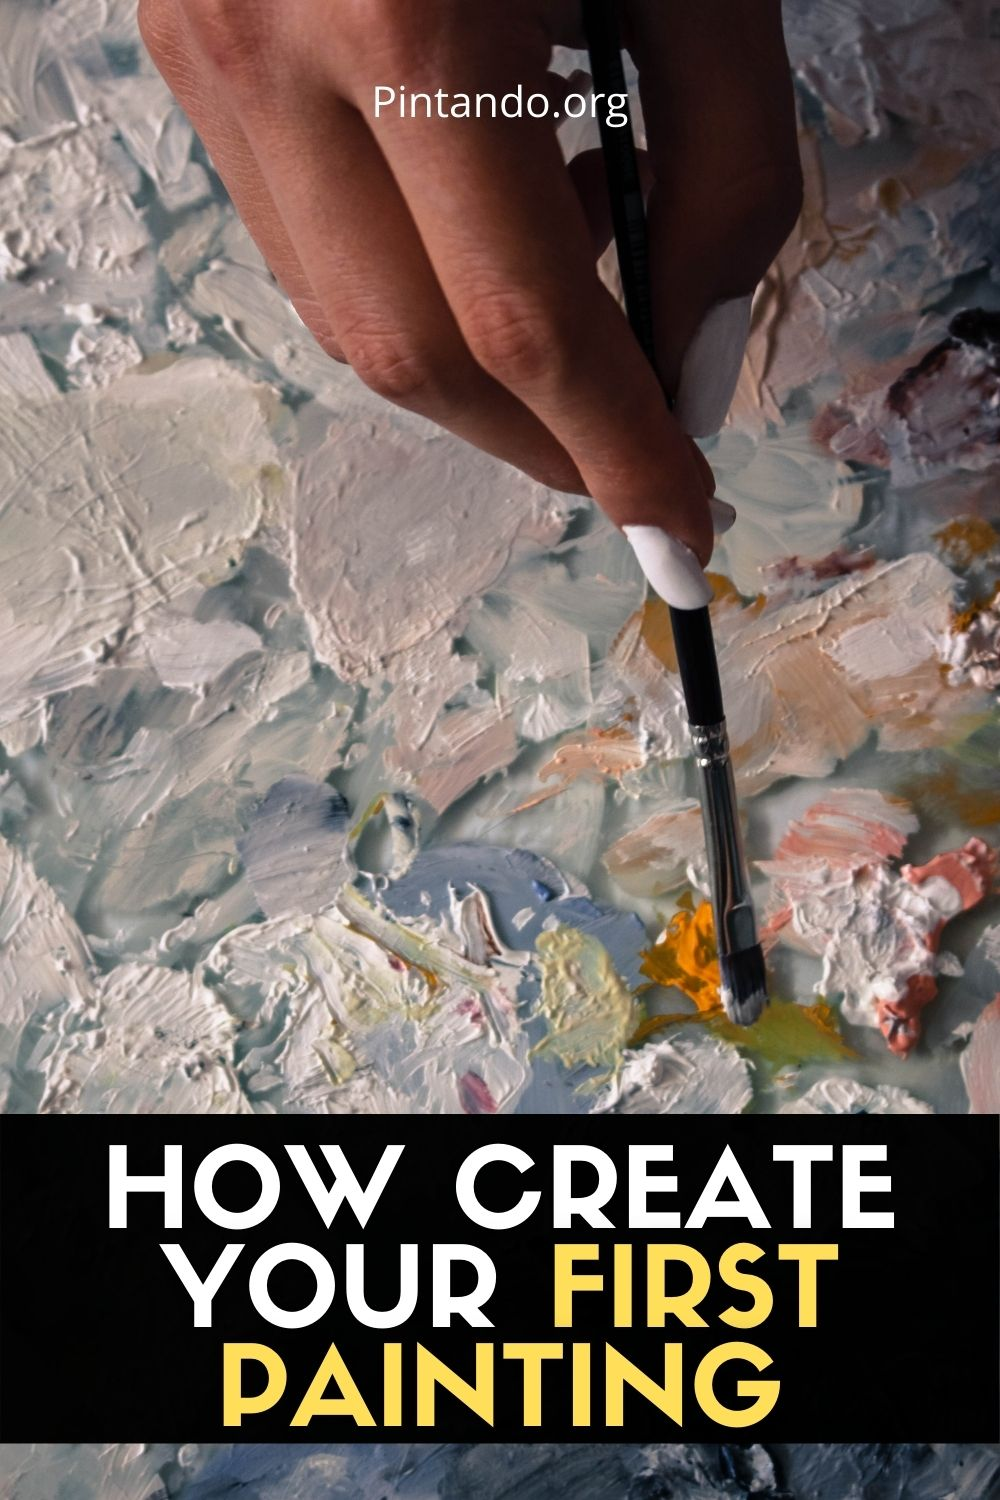 HOW CREATE YOUR FIRST PAINTING